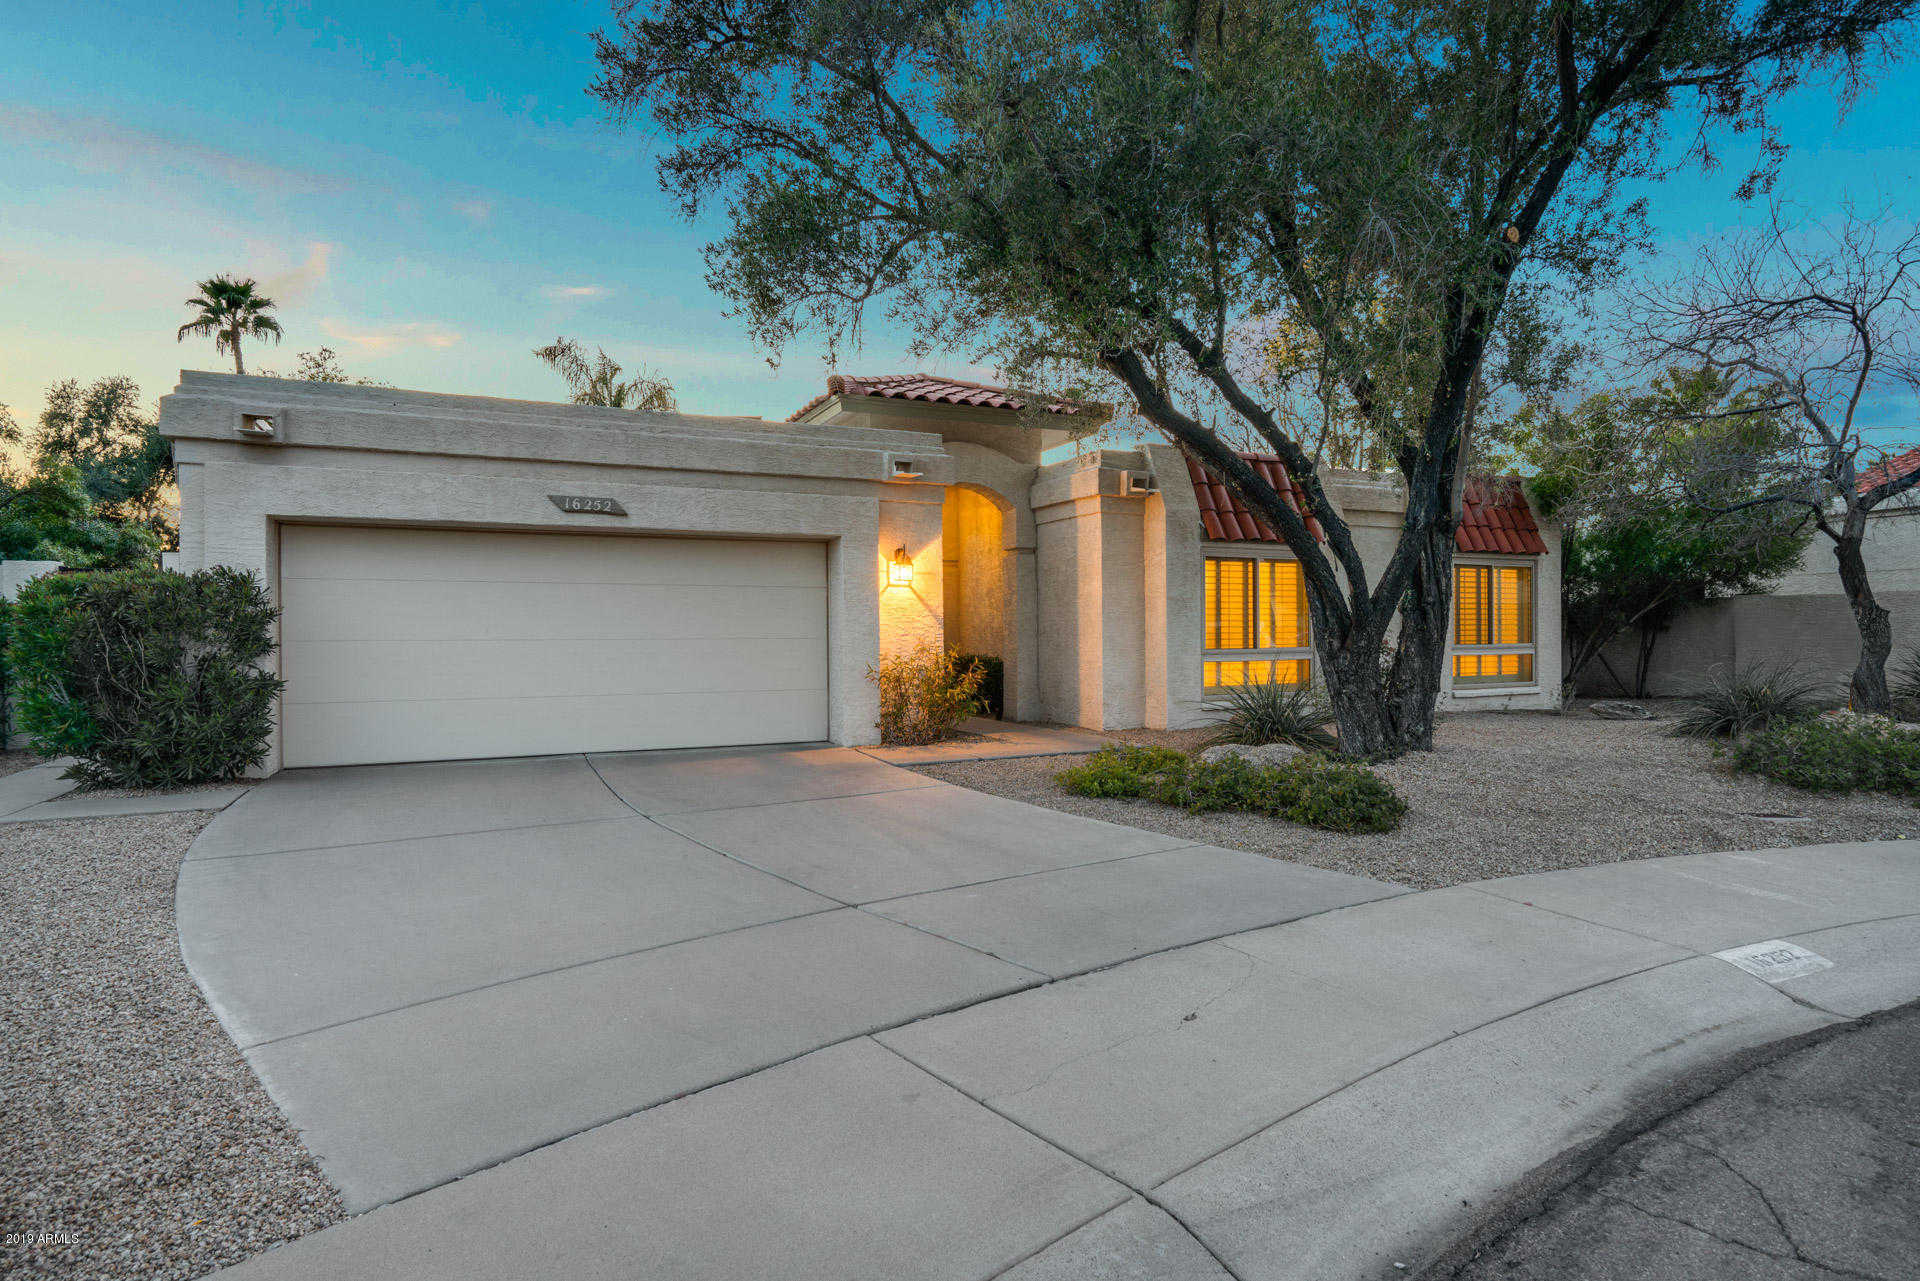 $619,900 - 4Br/3Ba - Home for Sale in North Ranch Unit 4 Lt 288-339 341-344 364-366, Scottsdale